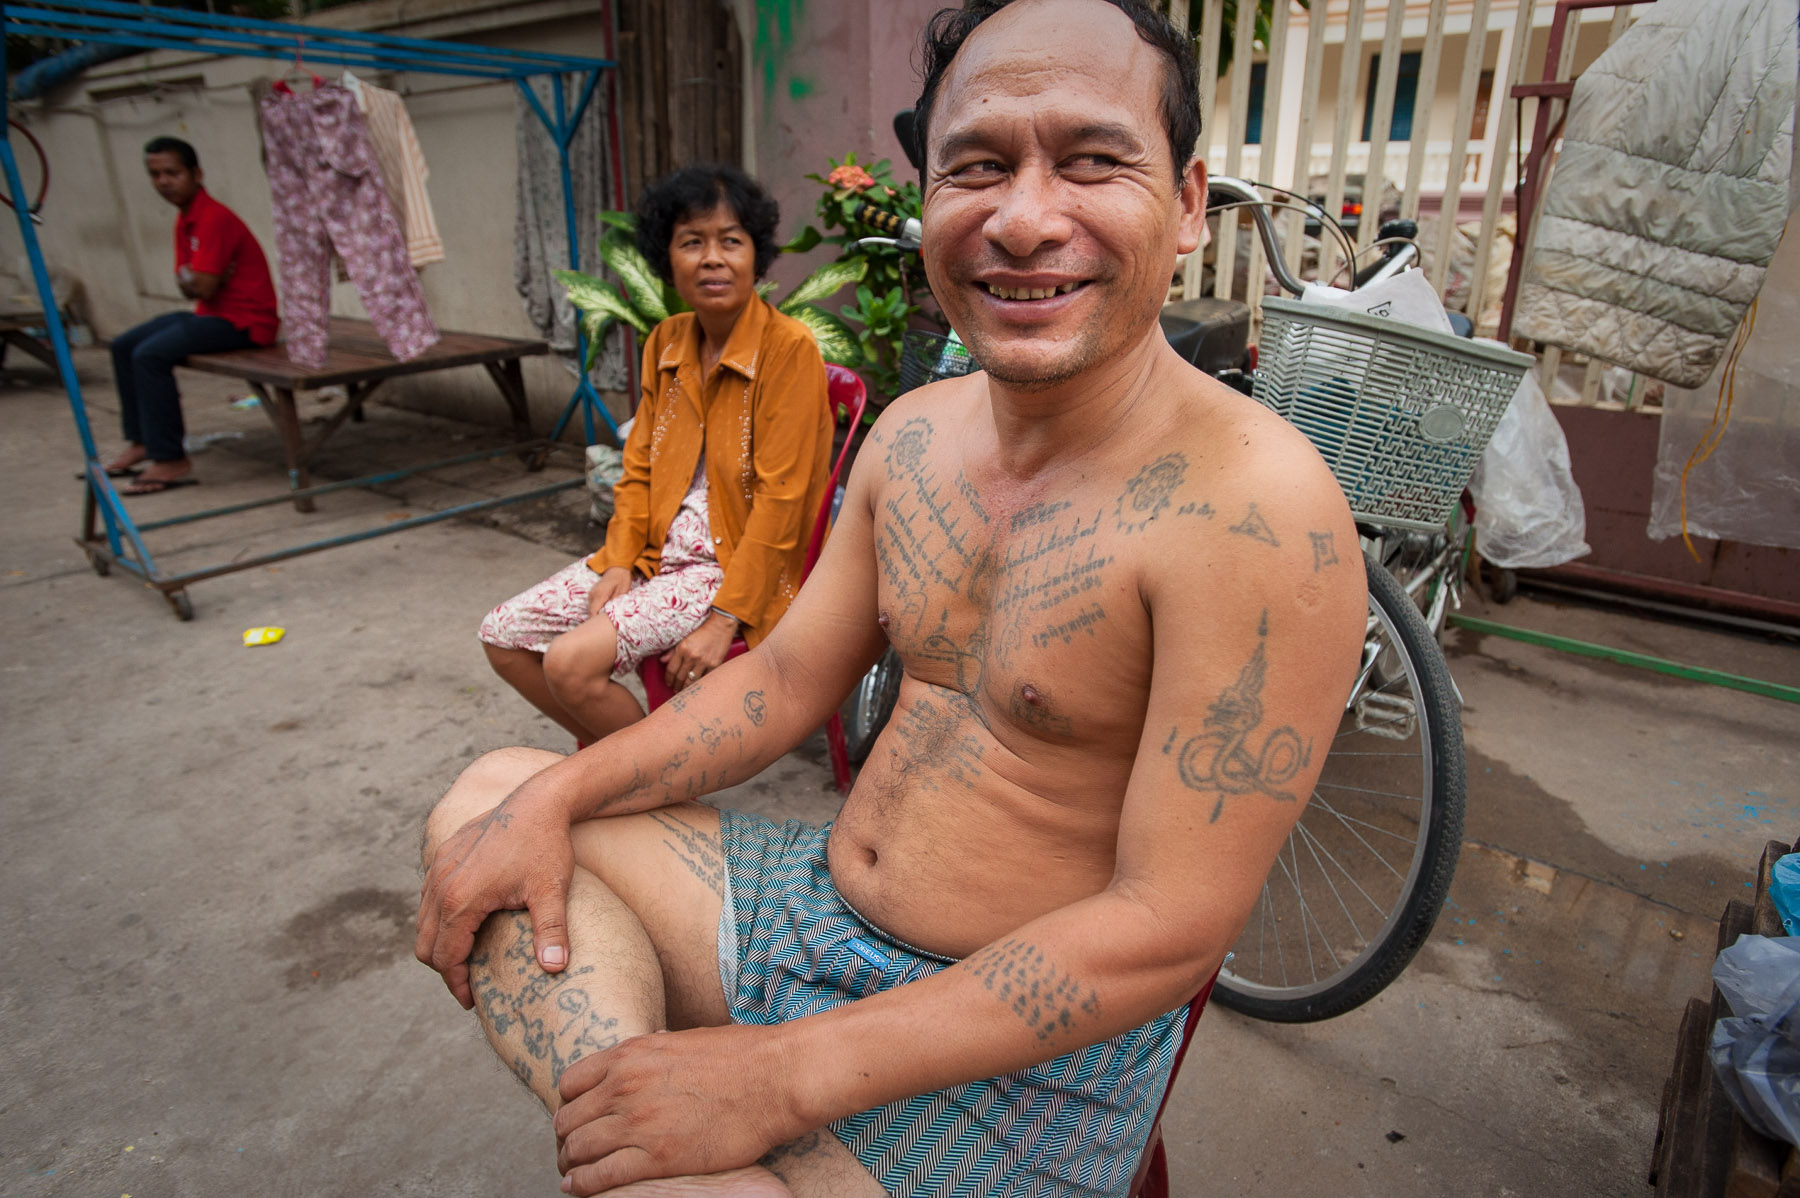 Man with traditional Khmer war tattoos, Phnom Penh Cambodia.